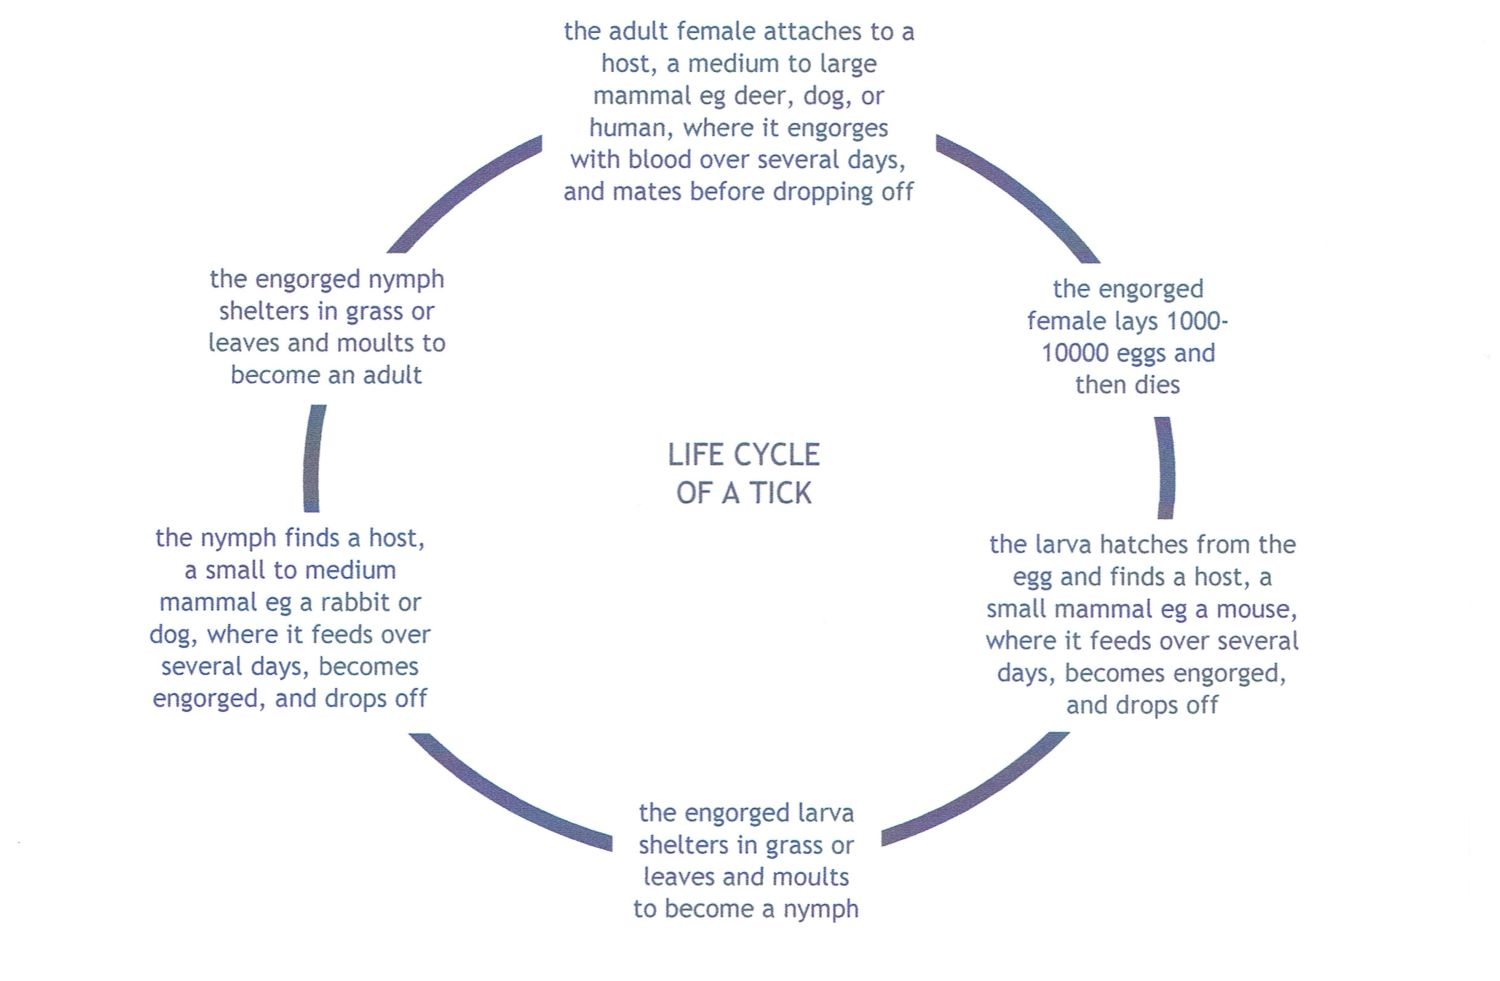 life cycle of a tick cropped 1500px.jpg